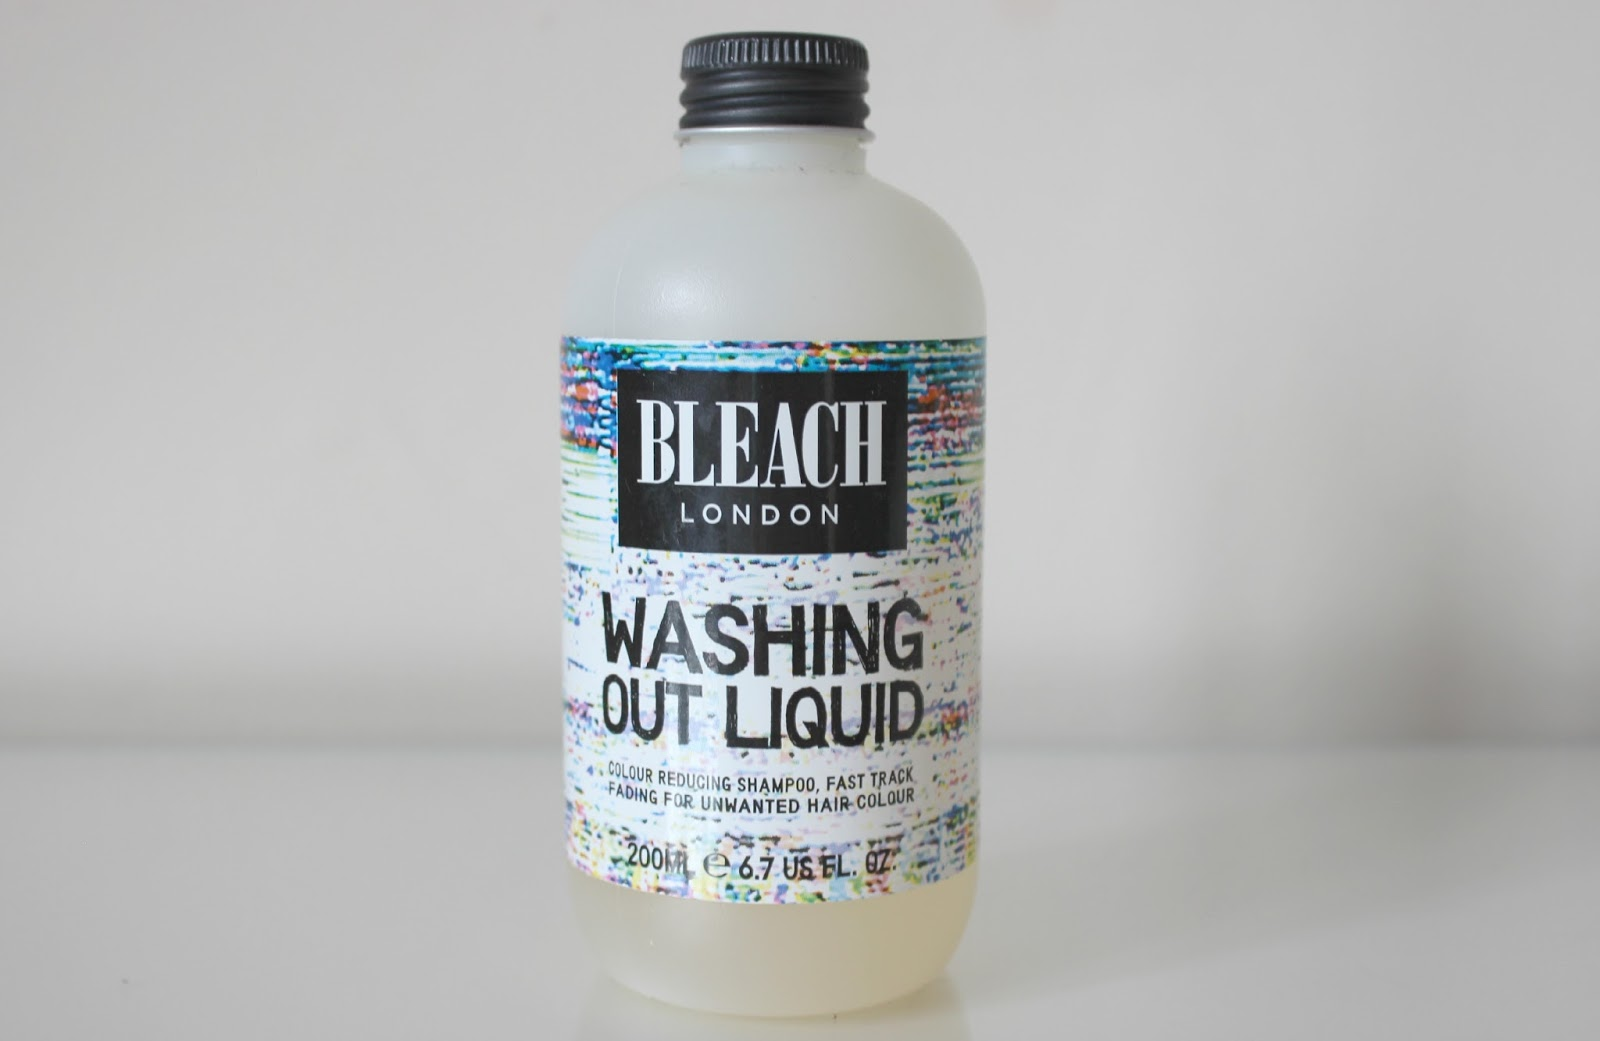 A picture of Bleach London Washing Out Liquid